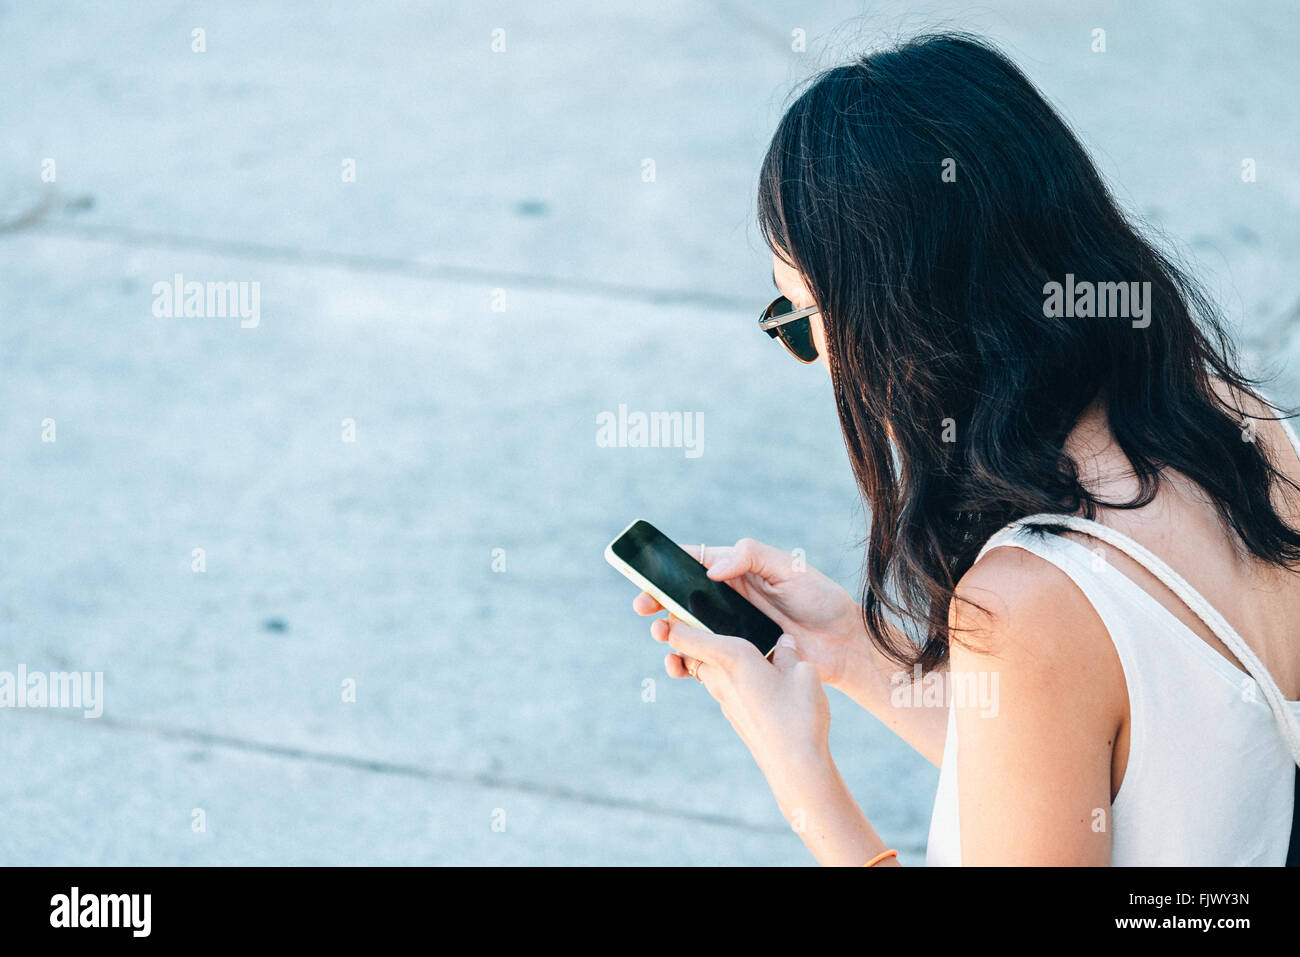 Side View Of Woman Using Smart Phone On Street - Stock Image